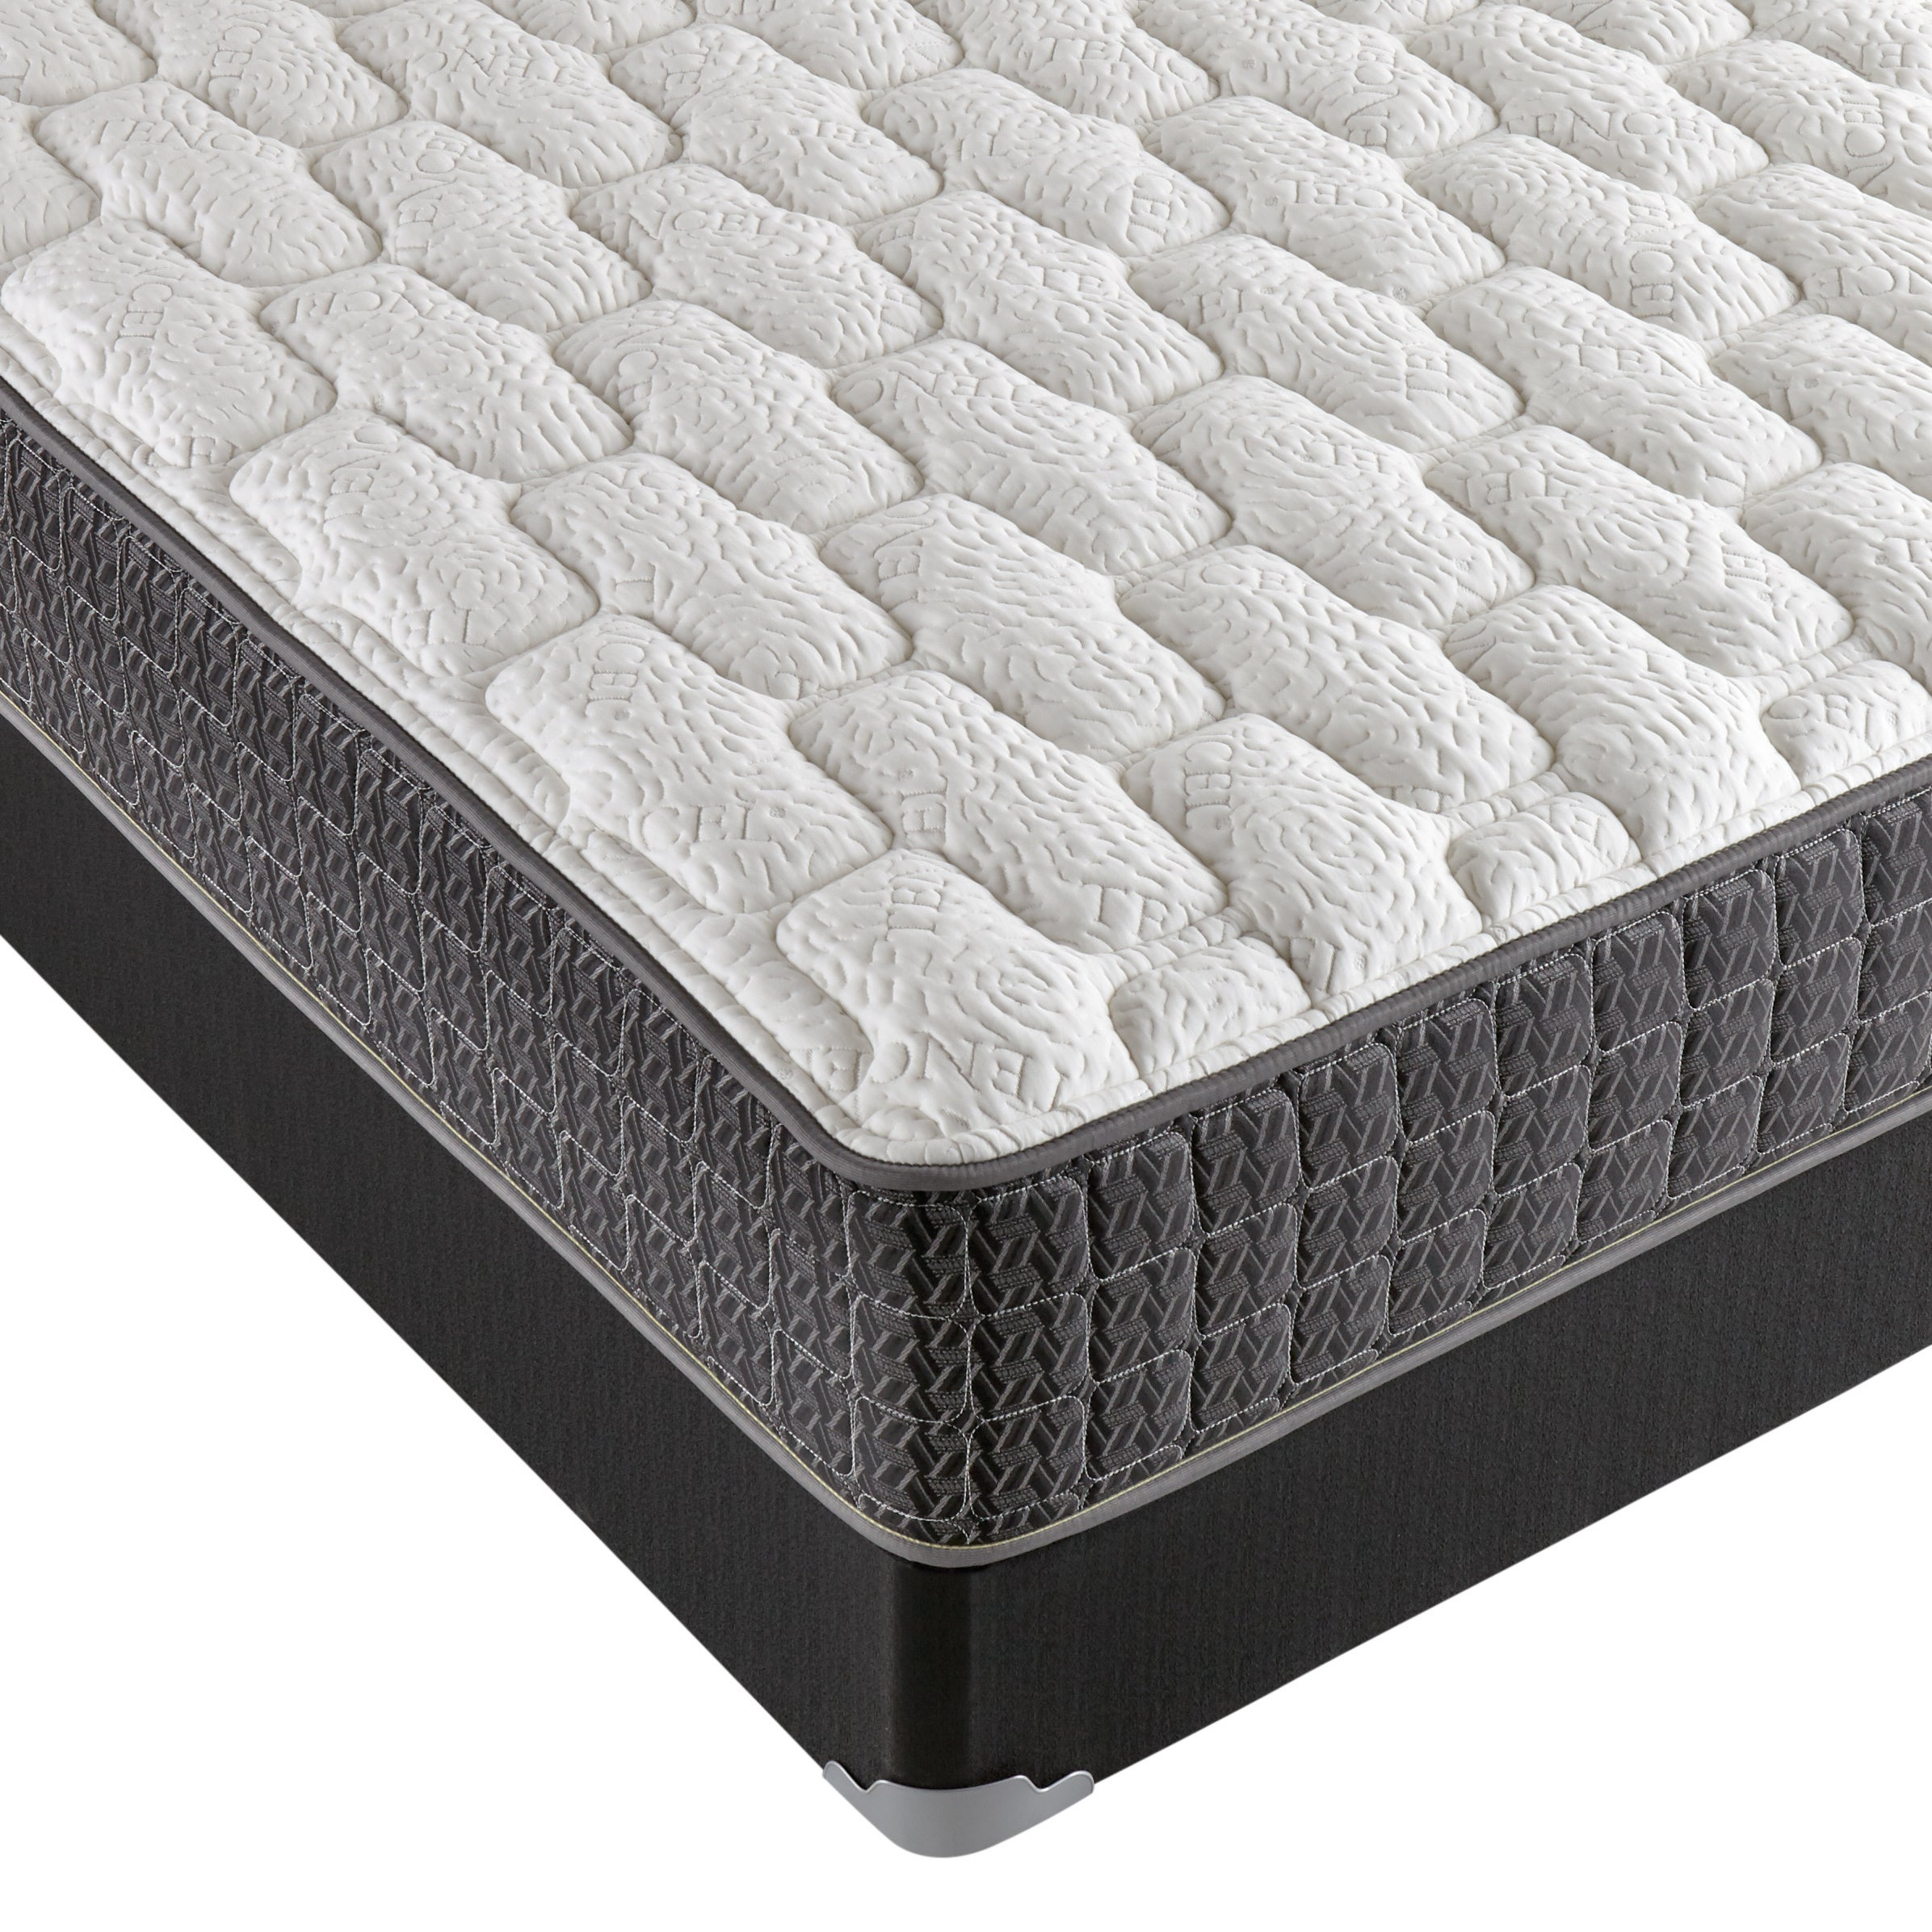 Spring Air Twin Xl Mattress From Natalie Latex Hybrid Queen Ultra Firm